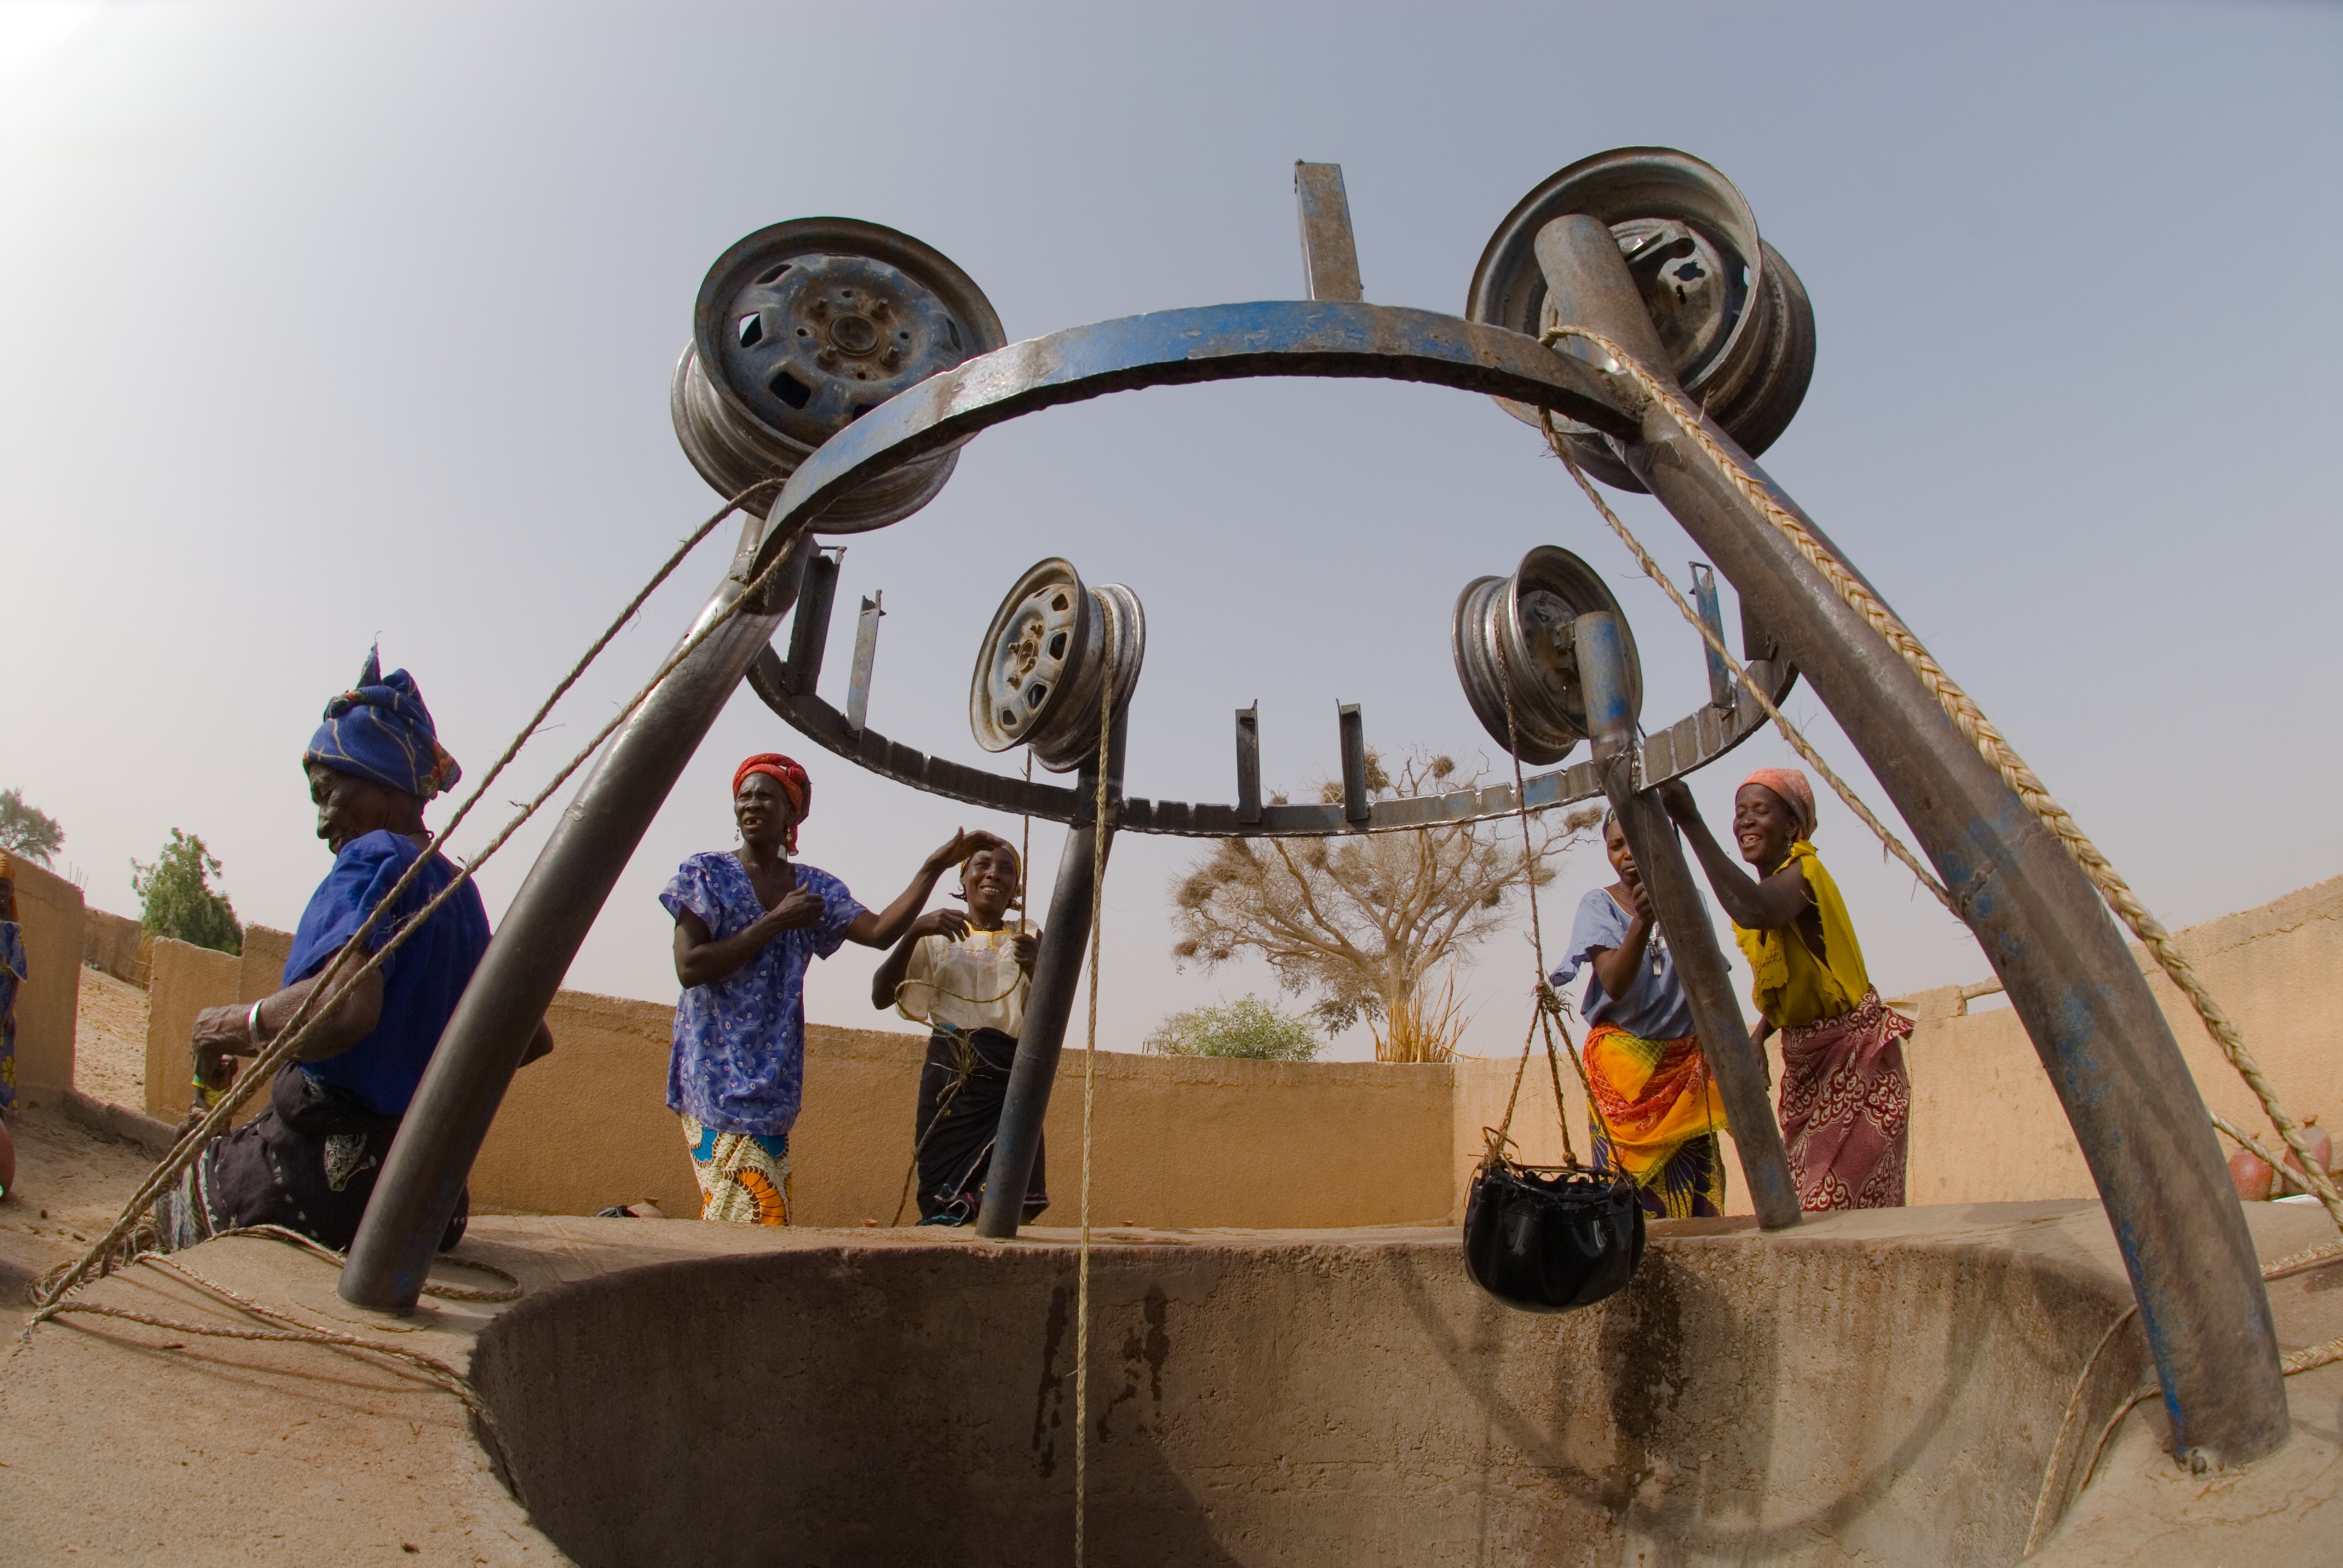 In Niger, this well and its surrounds have been sealed with concrete, and wheel hubs are mounted to act as pulleys. Photo from World Vision Australia